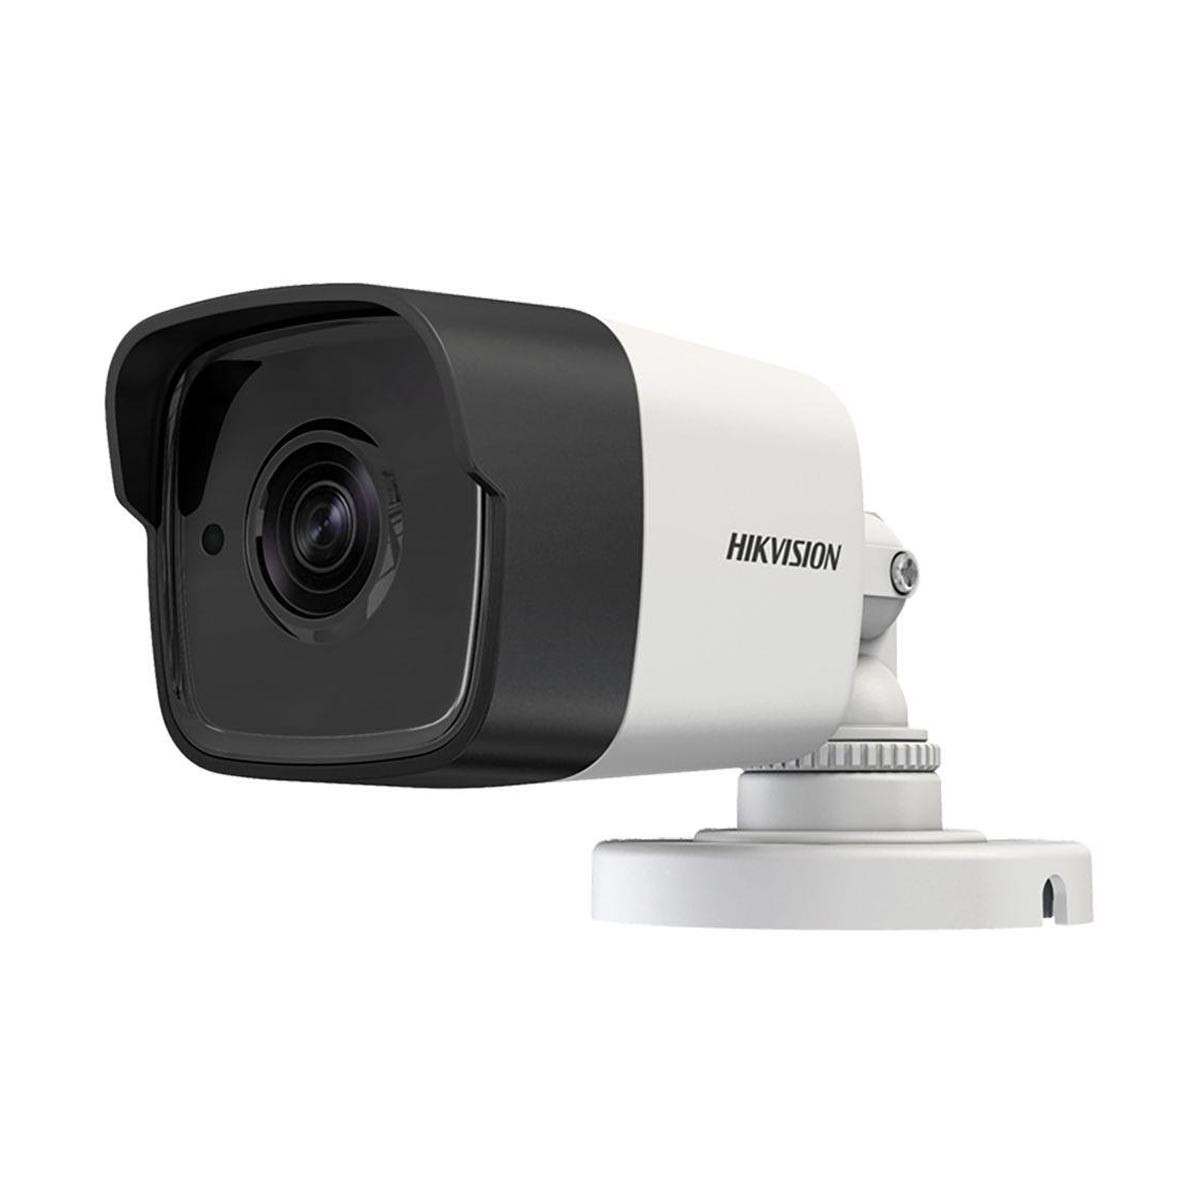 CÂMERA BULLET HIKVISION IP 30 MTS 1MP LENTE 2,8MM DS-2CD1001-I